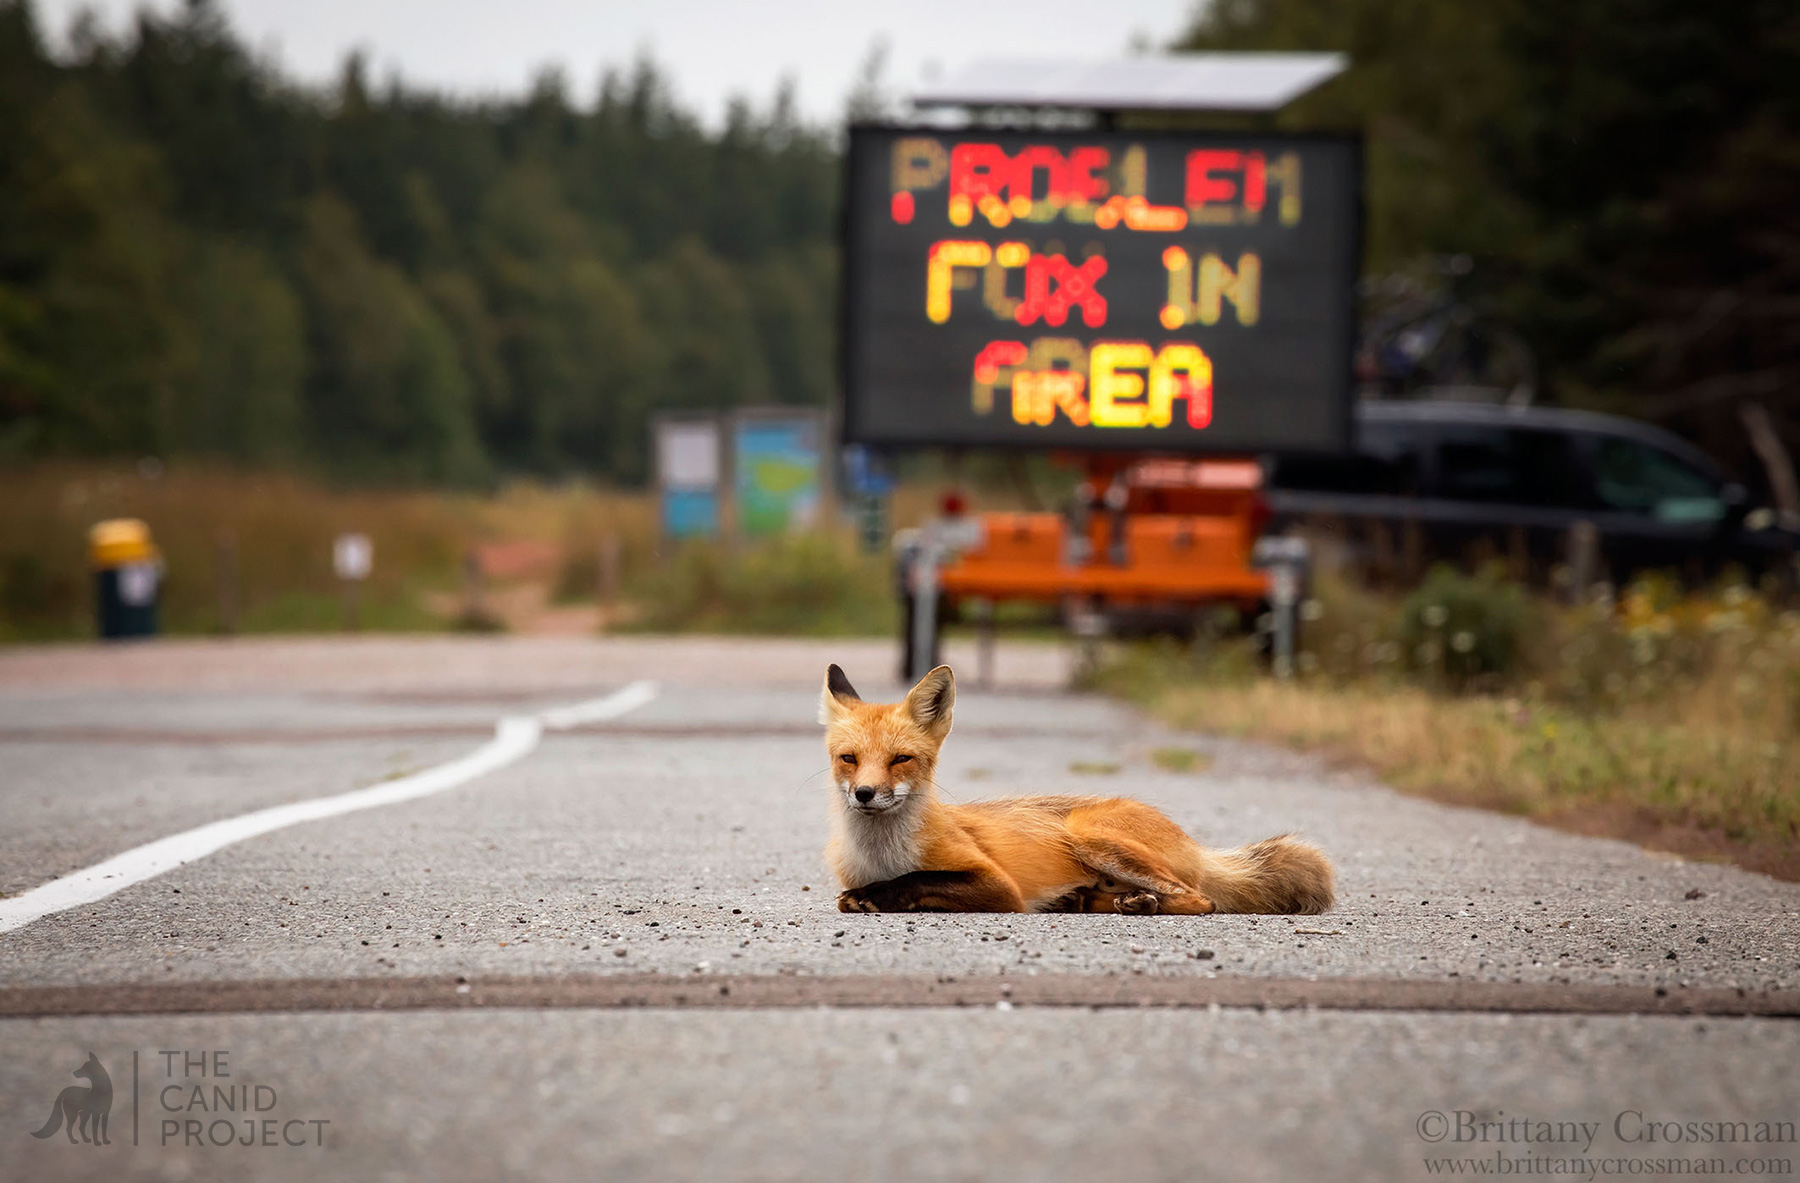 """PROBLEM FOX IN THE AREA"""